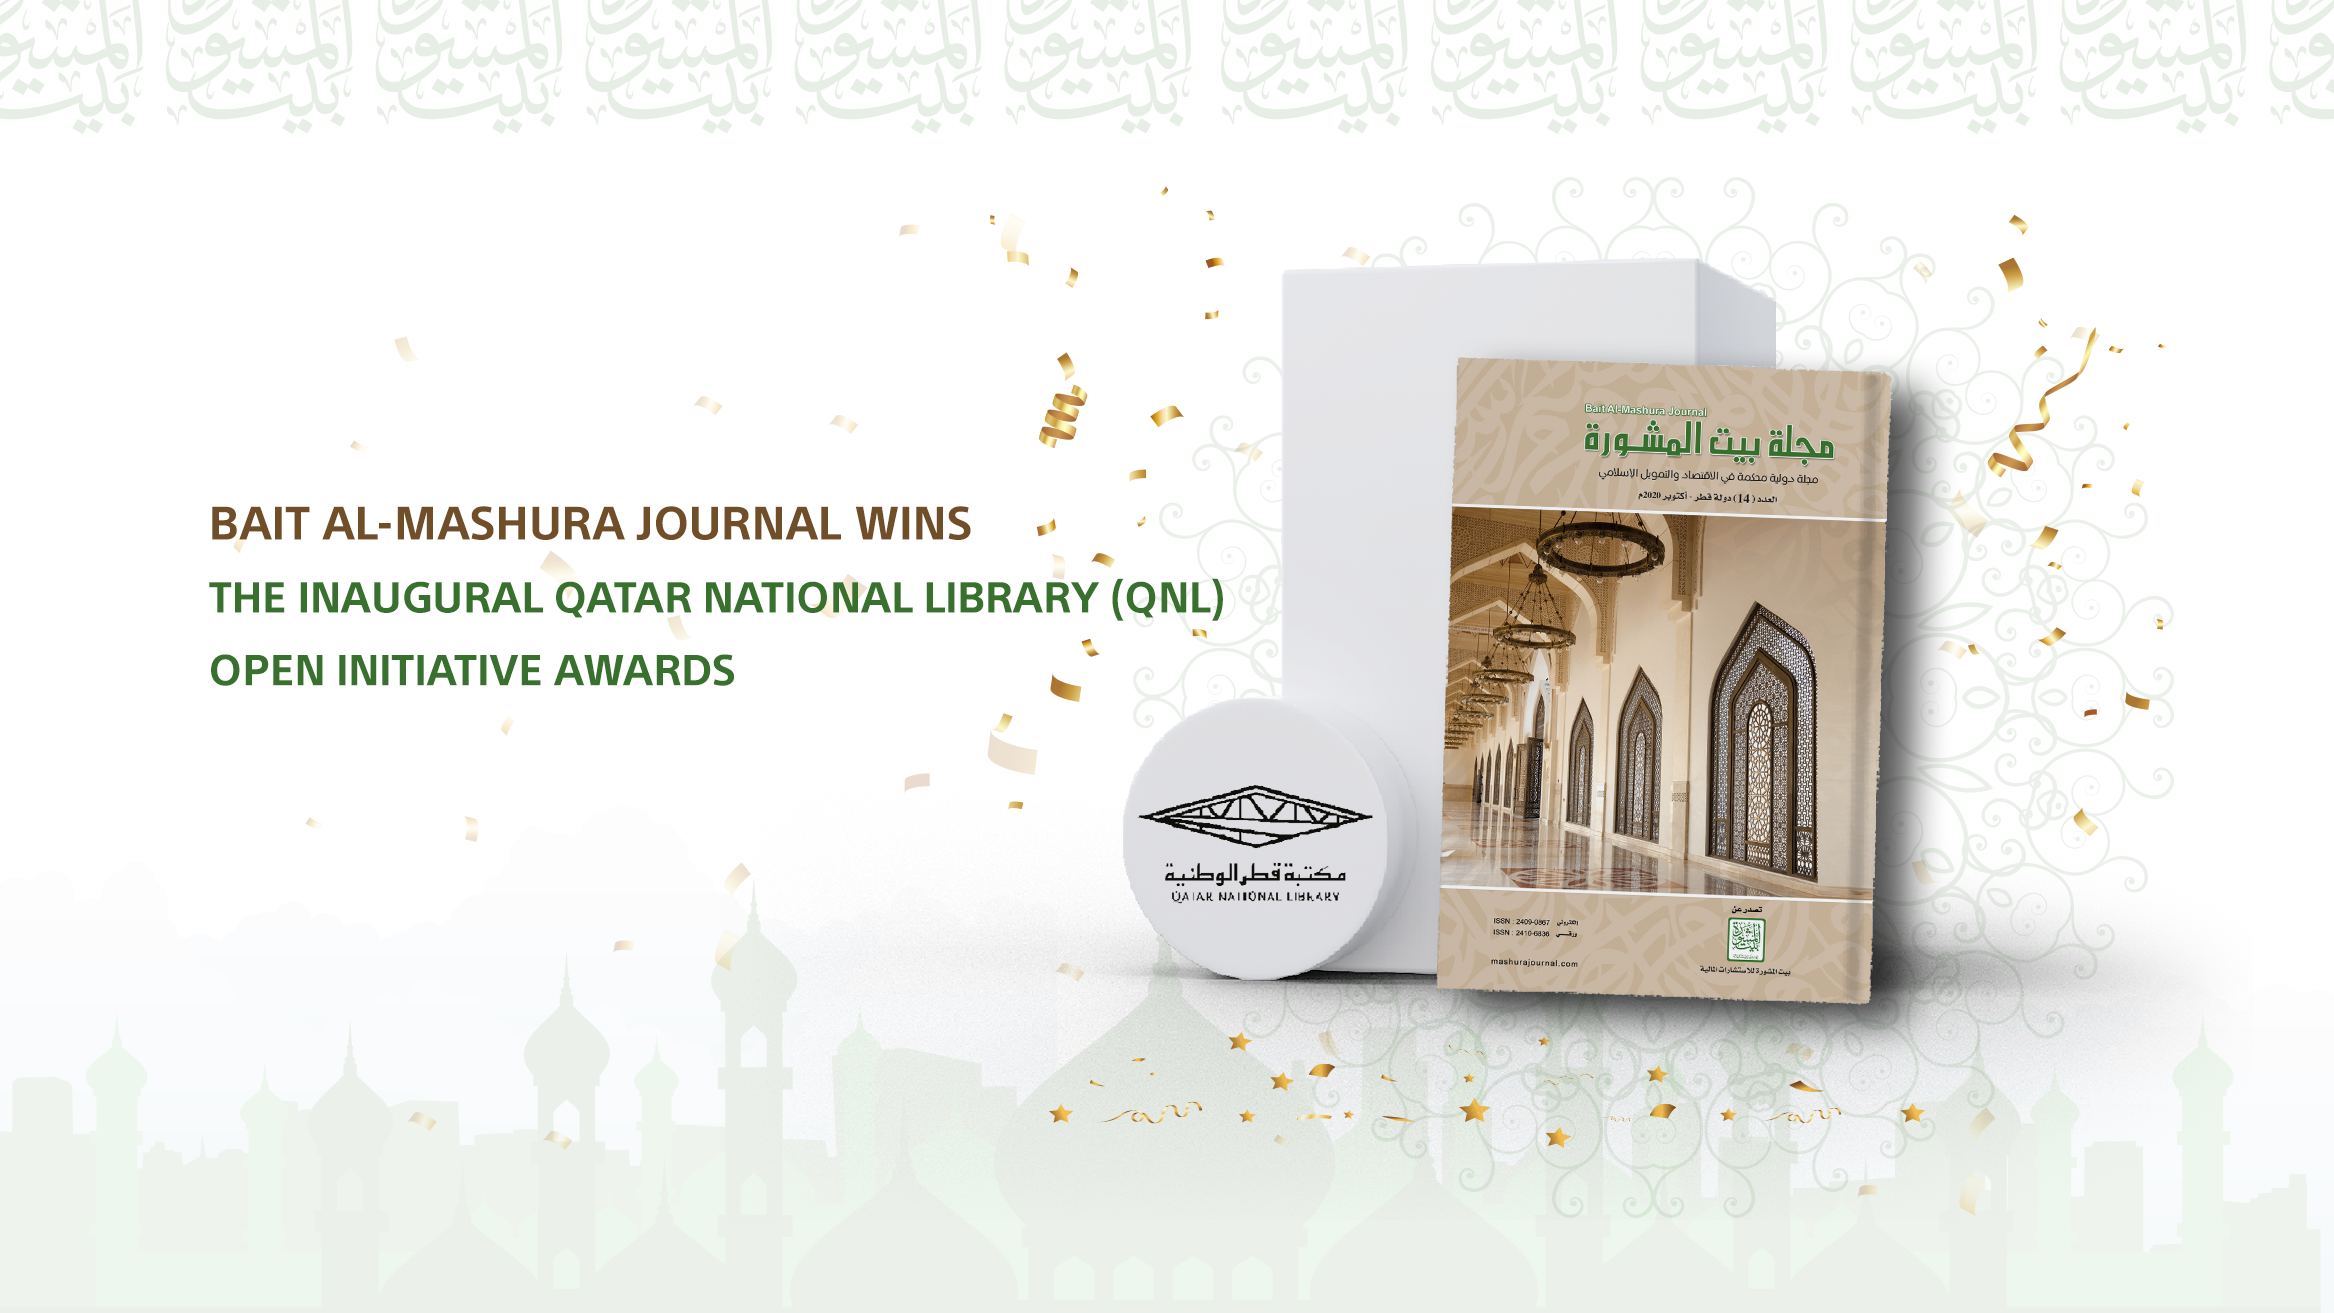 Bait Al-Mashura Journal wins the inaugural (QNL) Open Initiative Awards